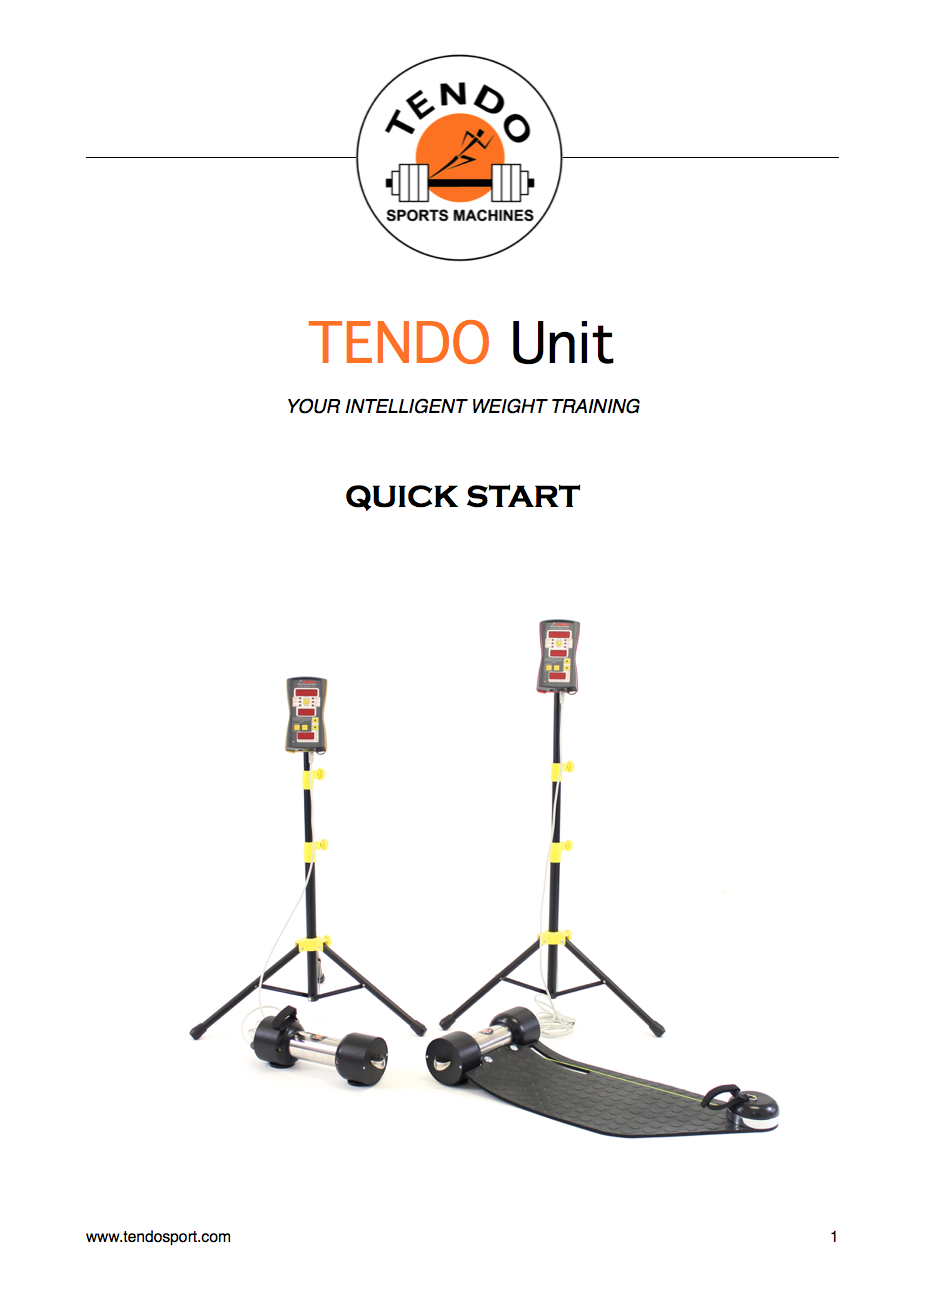 Tendo Unit quick start manual cover